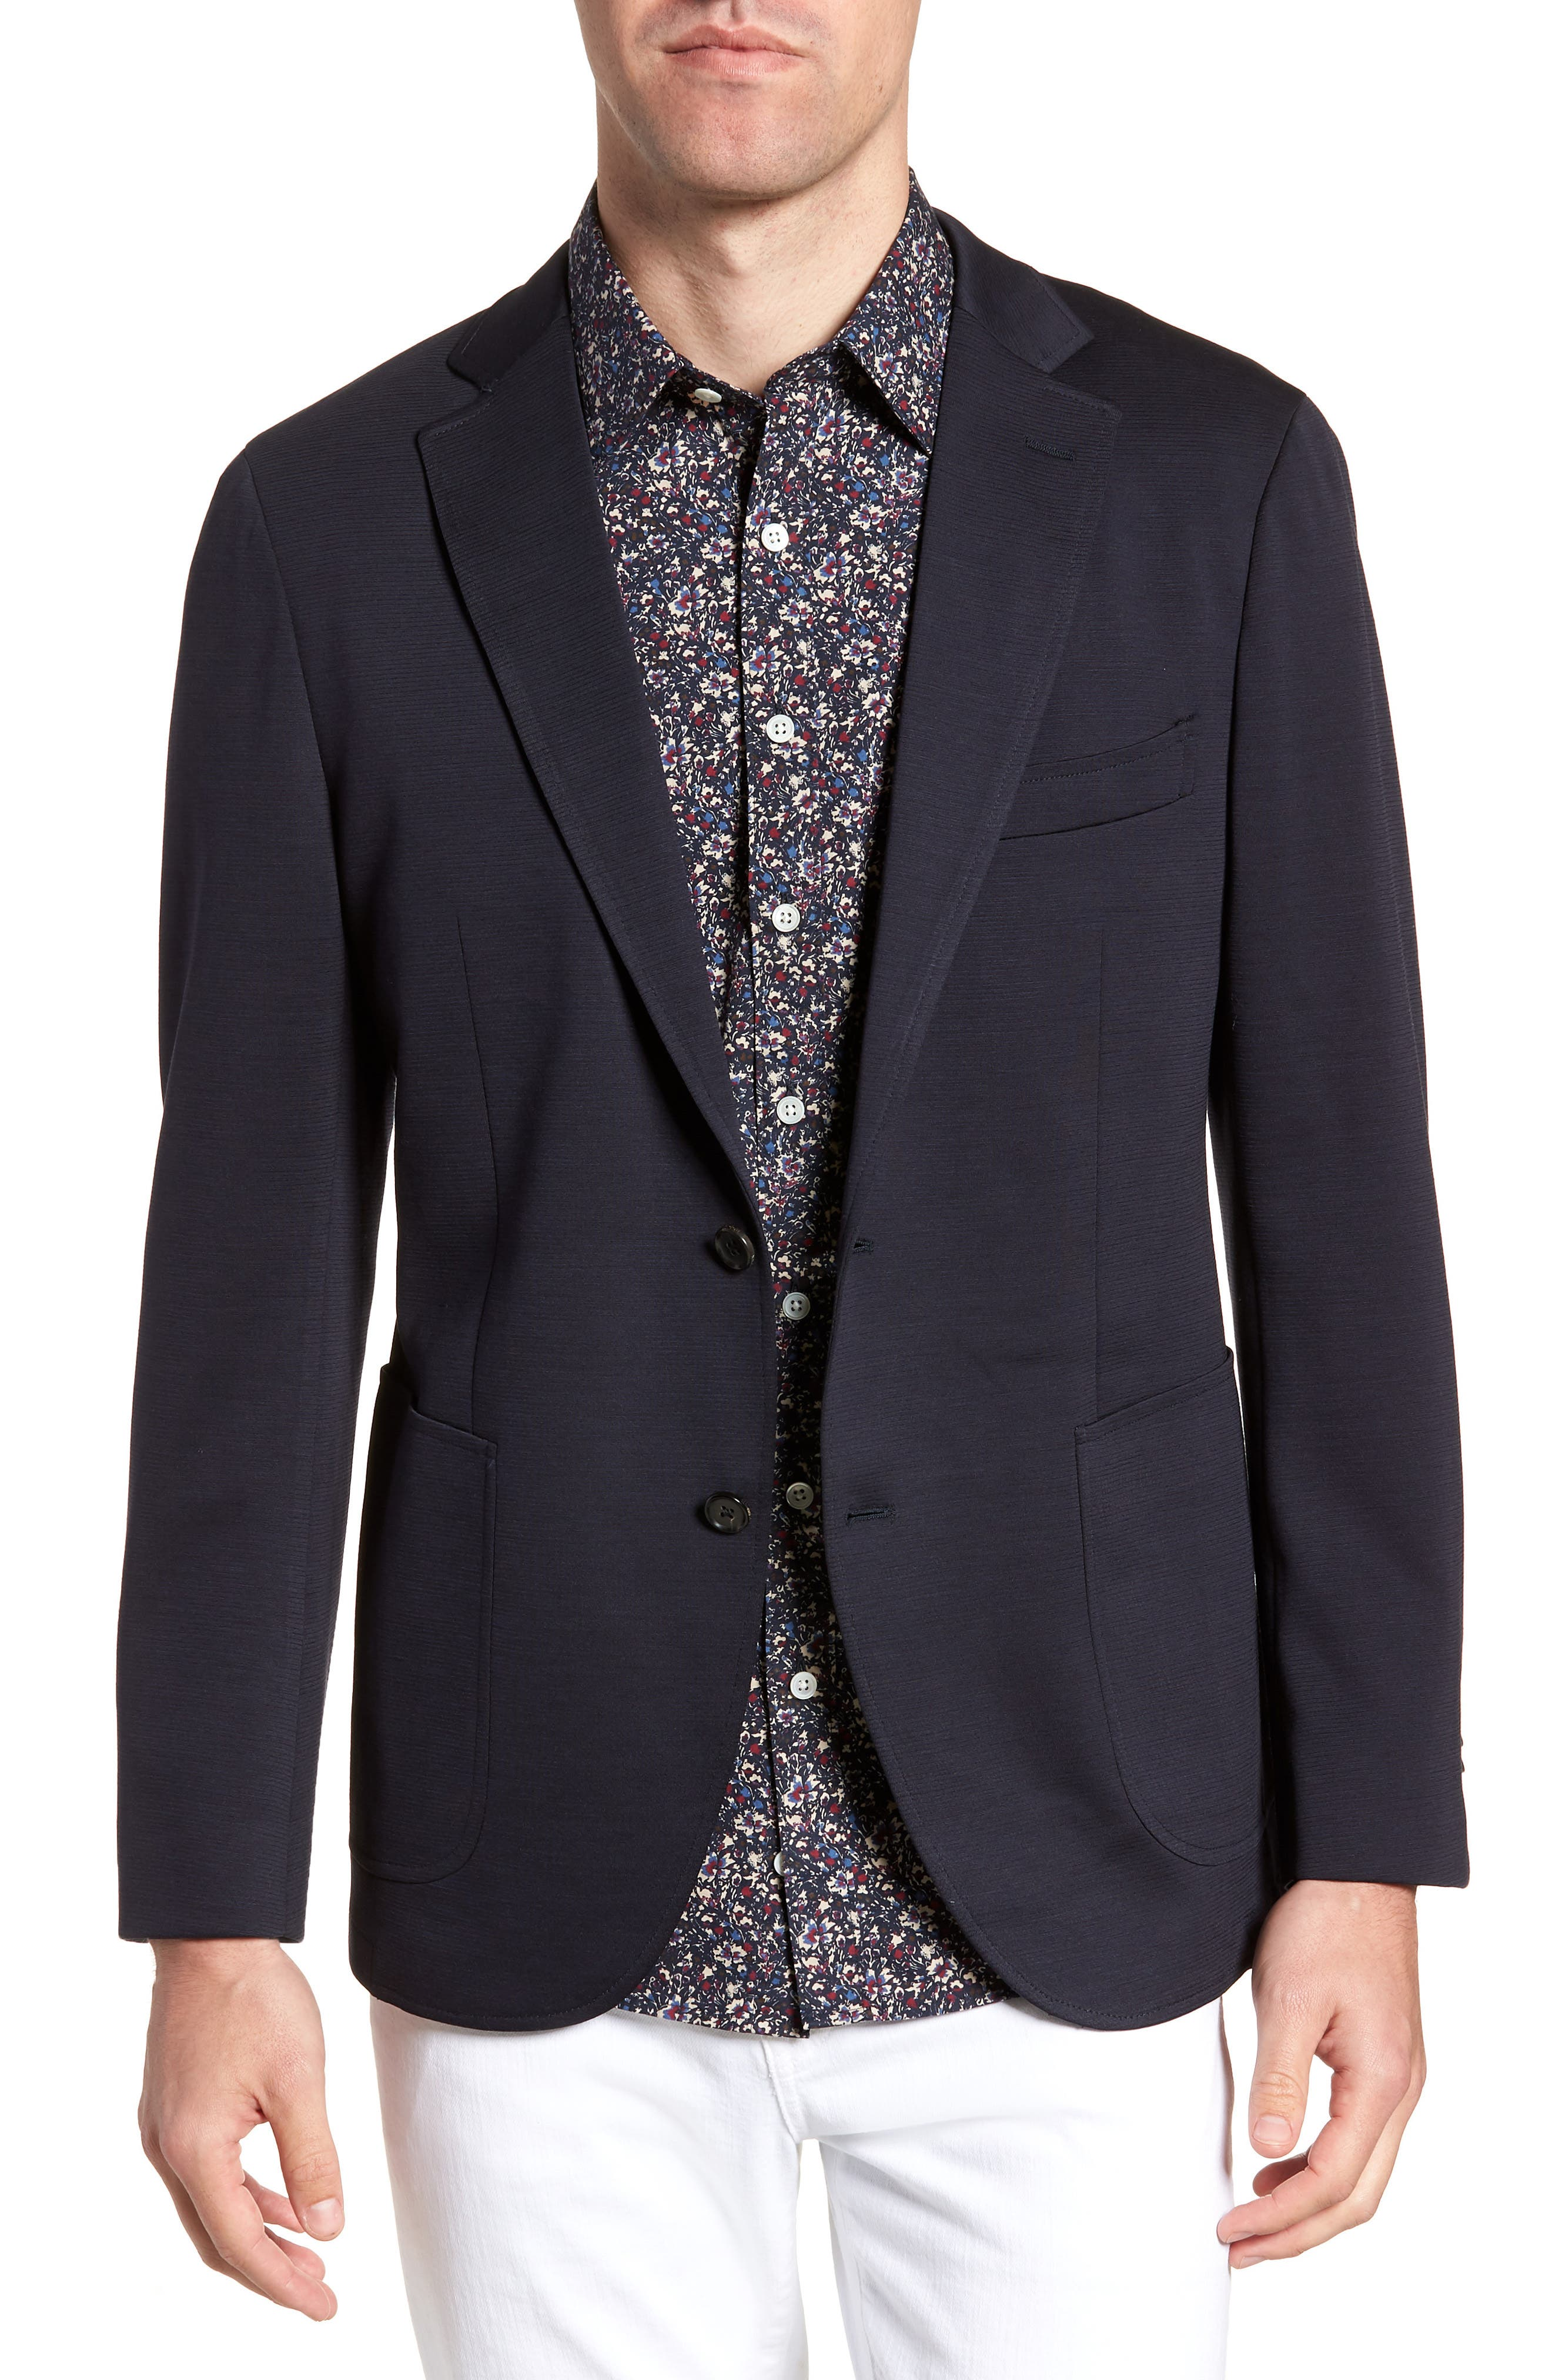 Cardrona Slim Fit Wool Blend Blazer,                             Main thumbnail 1, color,                             Navy